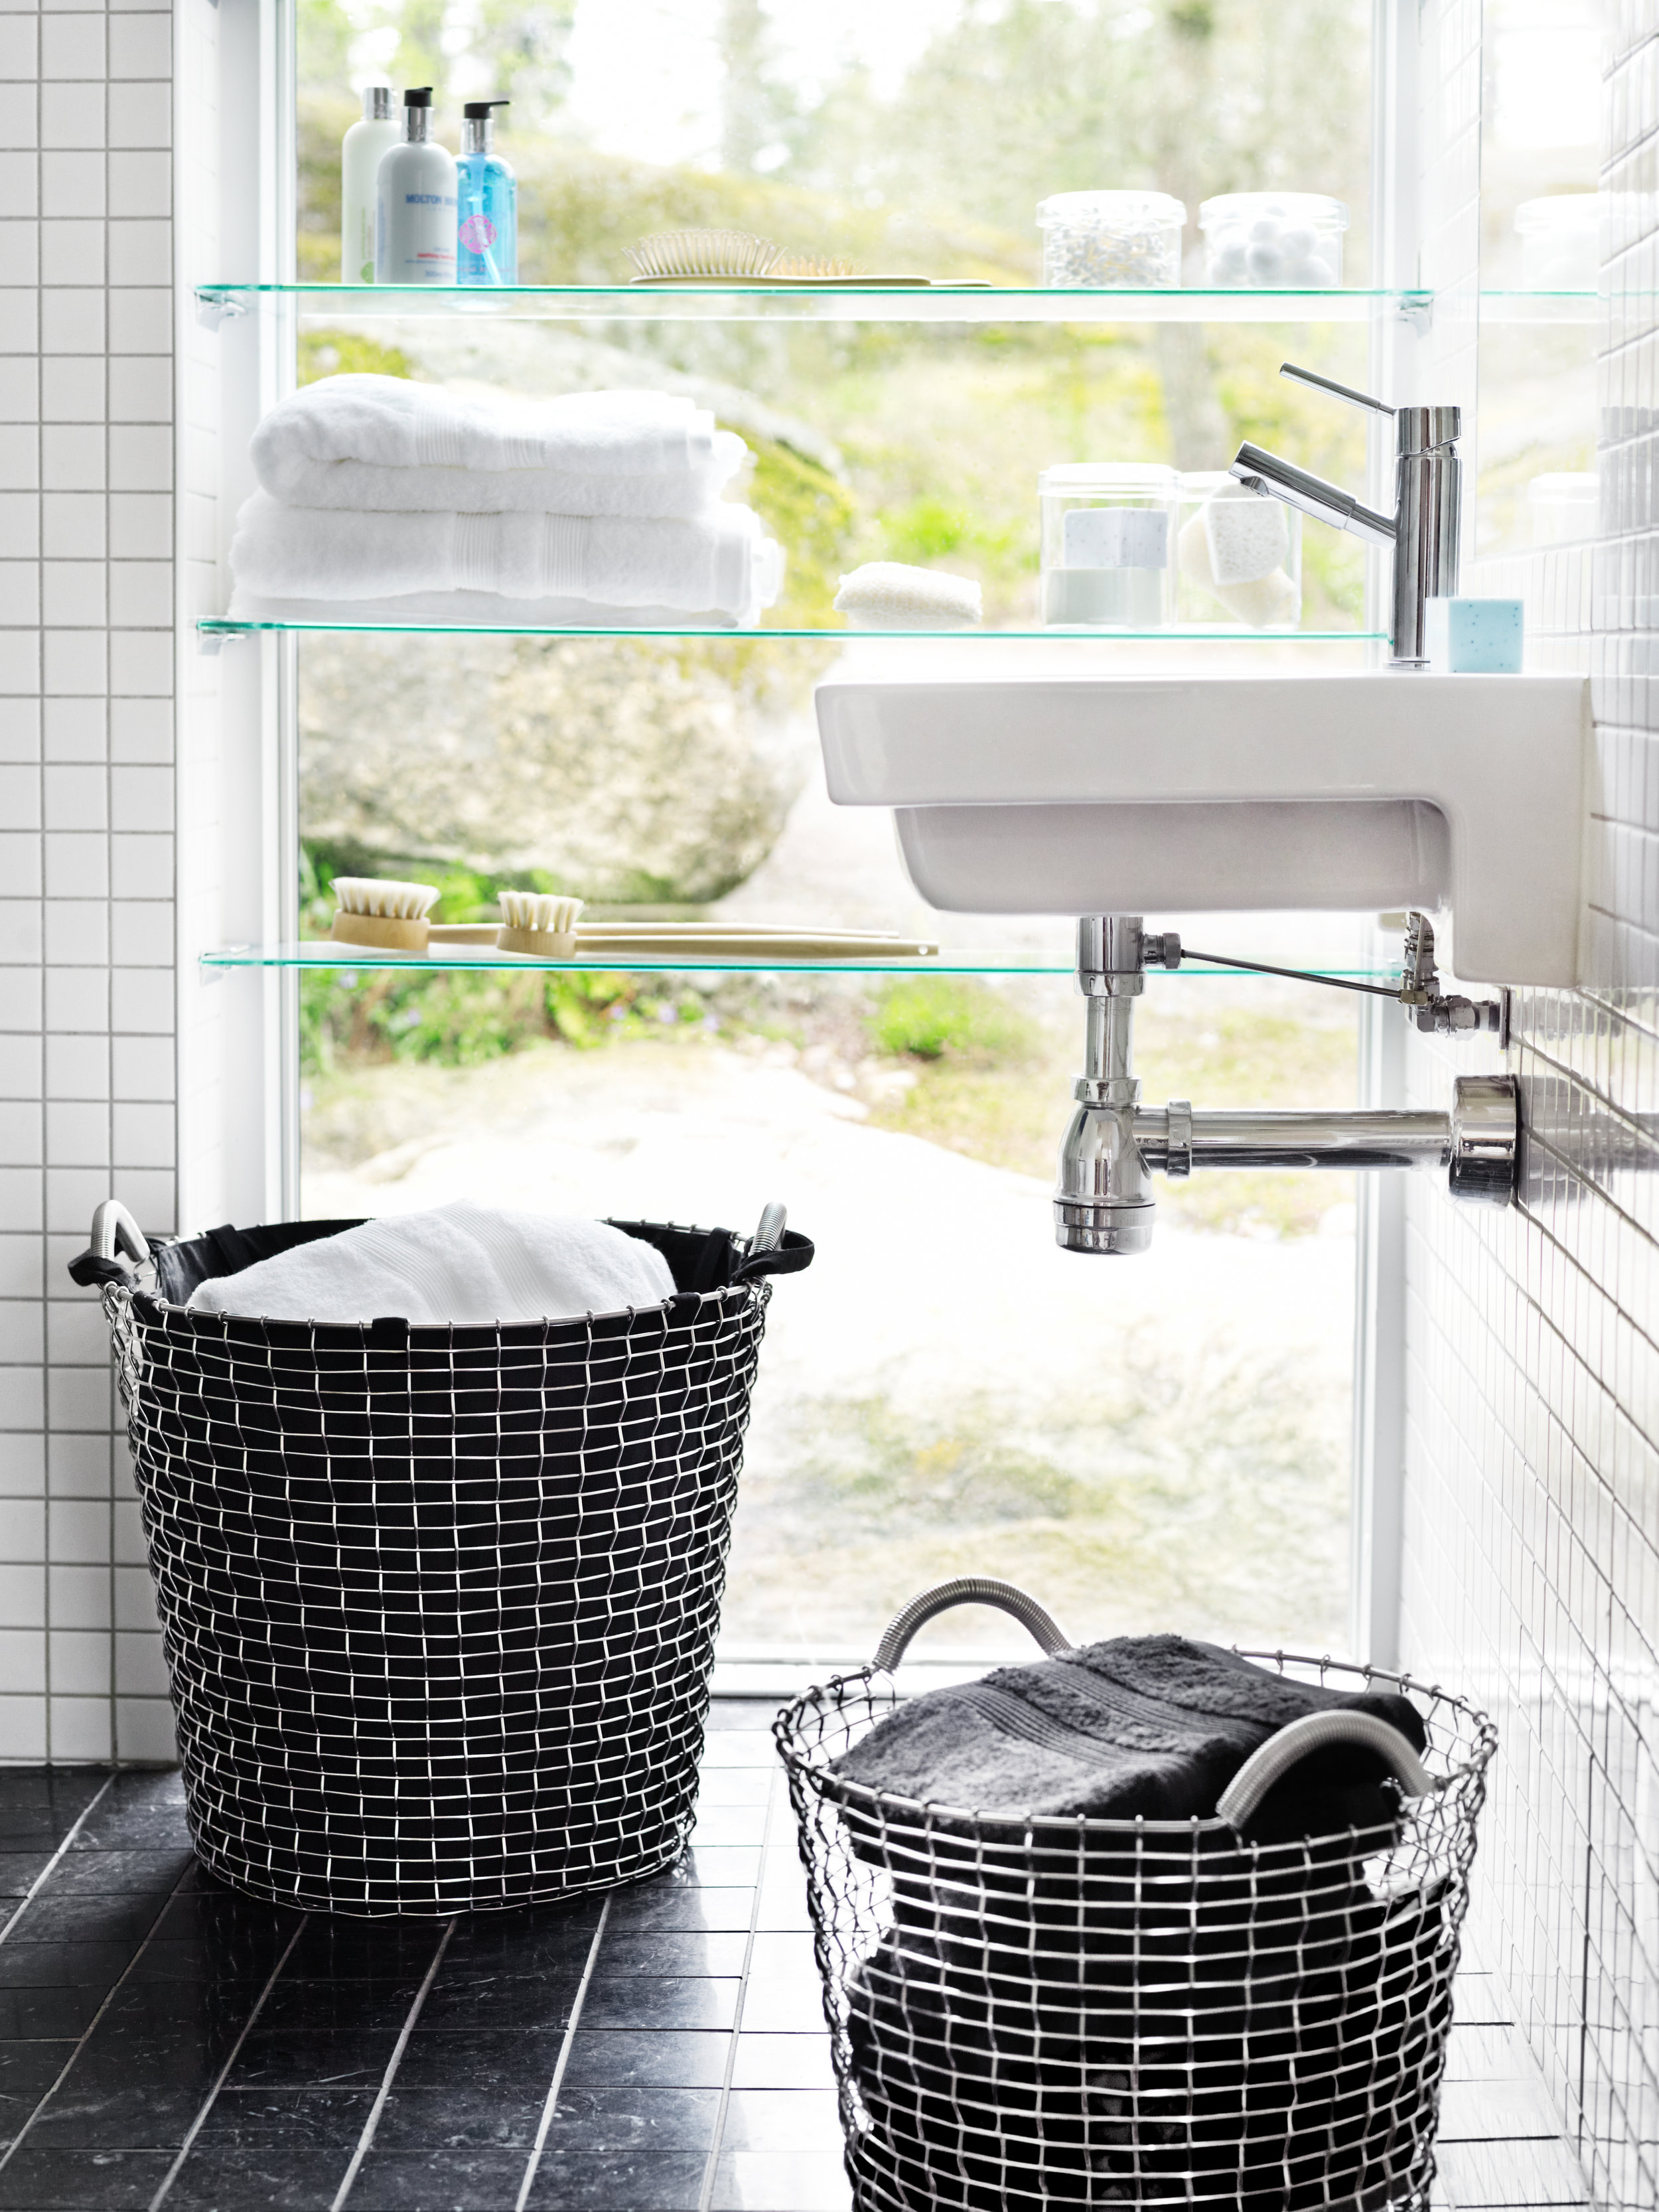 Bathroom & Laundry baskets: Classic 80 & Laundrybag black + Classic 24 with towels